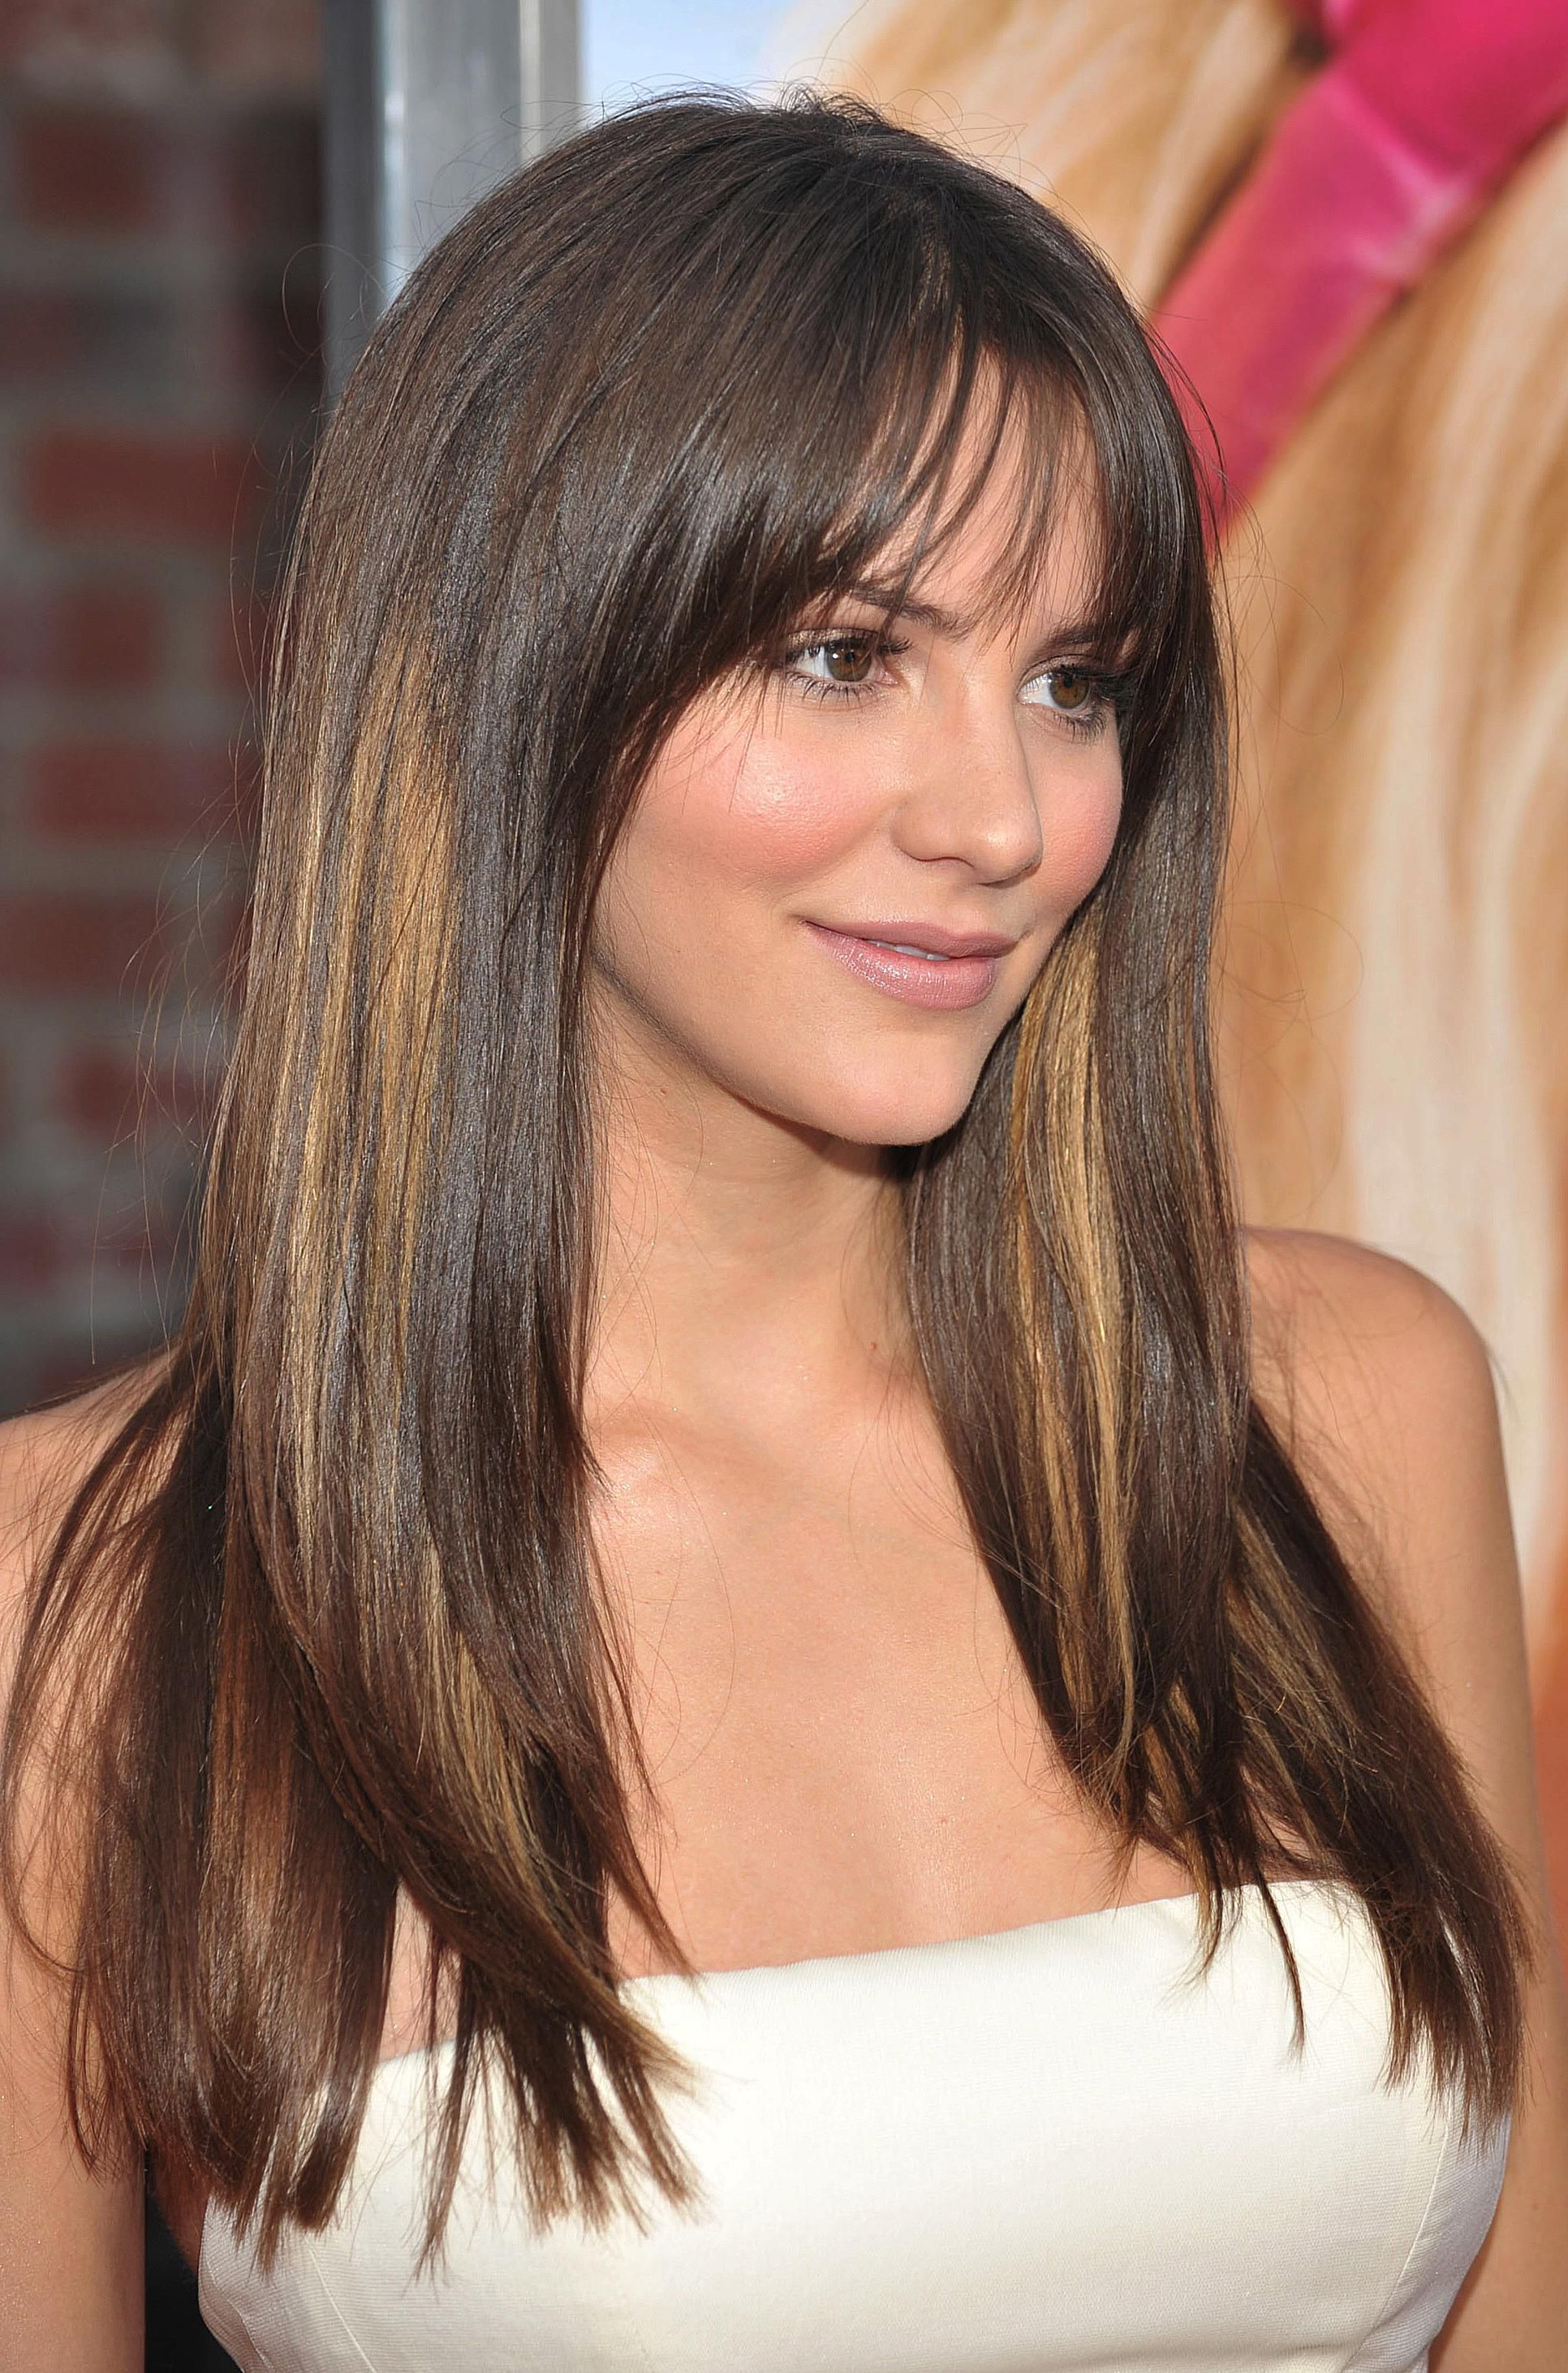 35 Flattering Hairstyles For Round Faces Within Most Current Medium Hairstyles With Side Bangs For Round Faces (View 4 of 20)